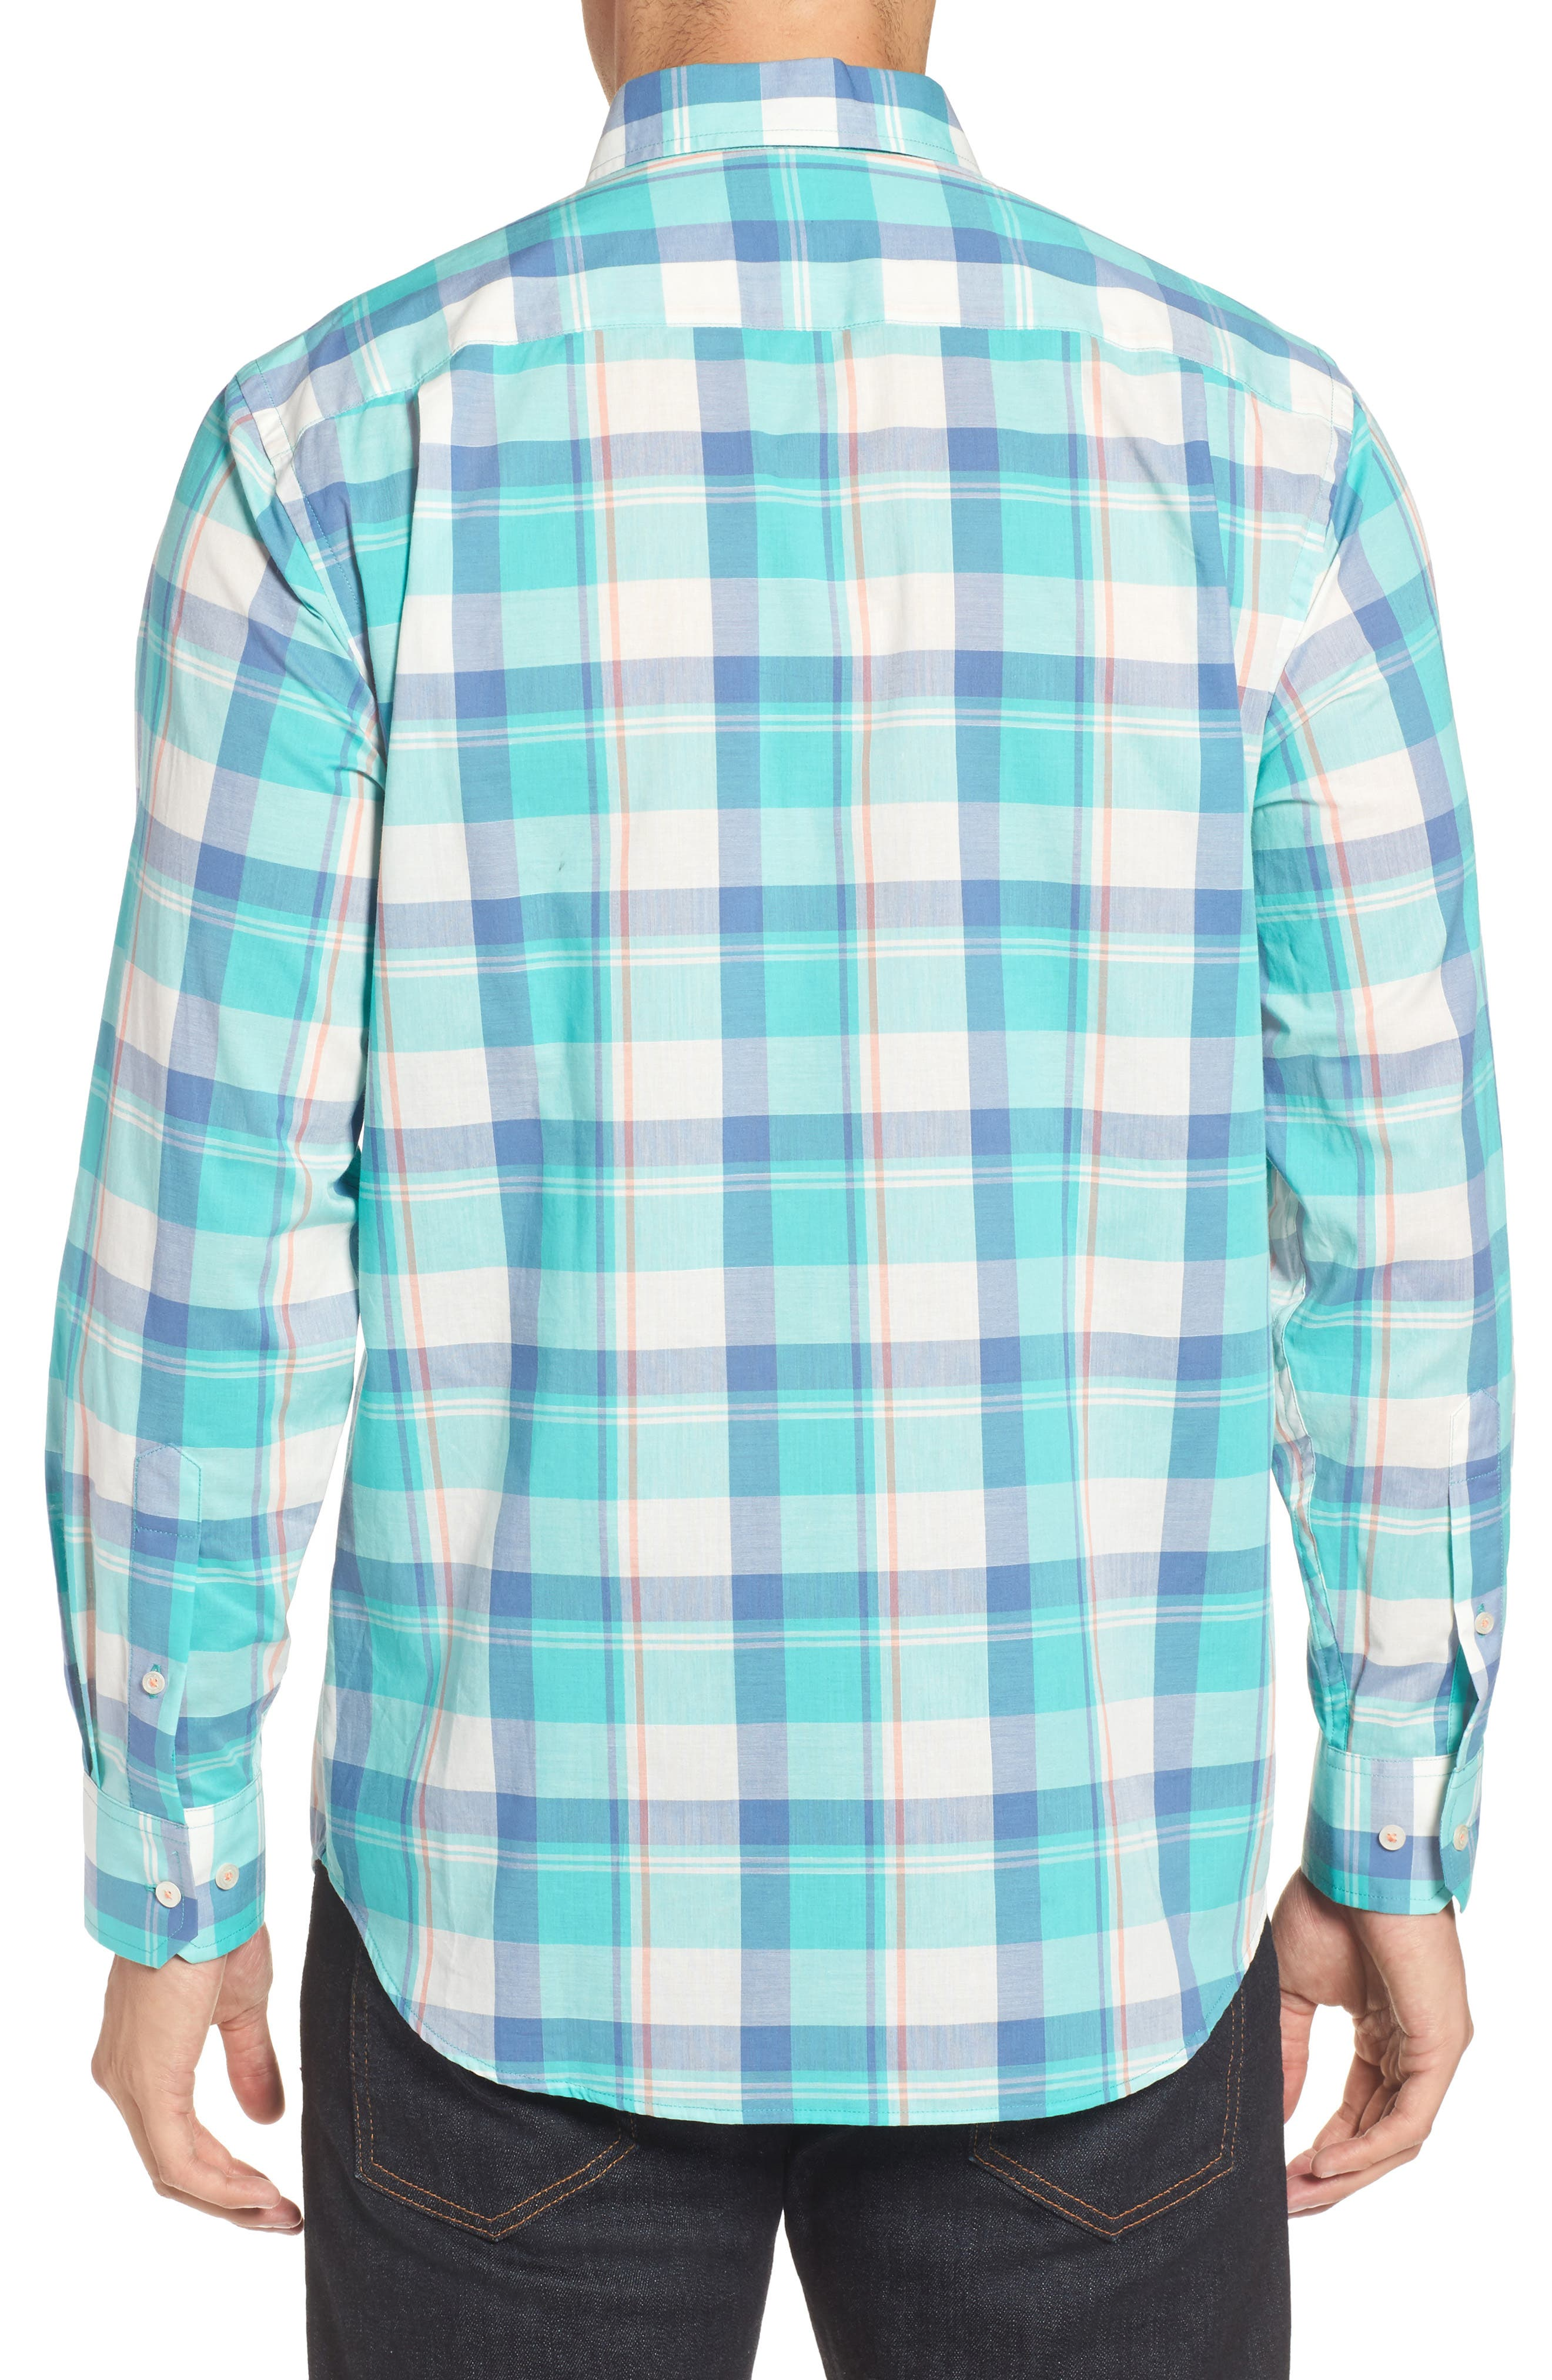 Green Cay Plaid Sport Shirt,                             Alternate thumbnail 2, color,